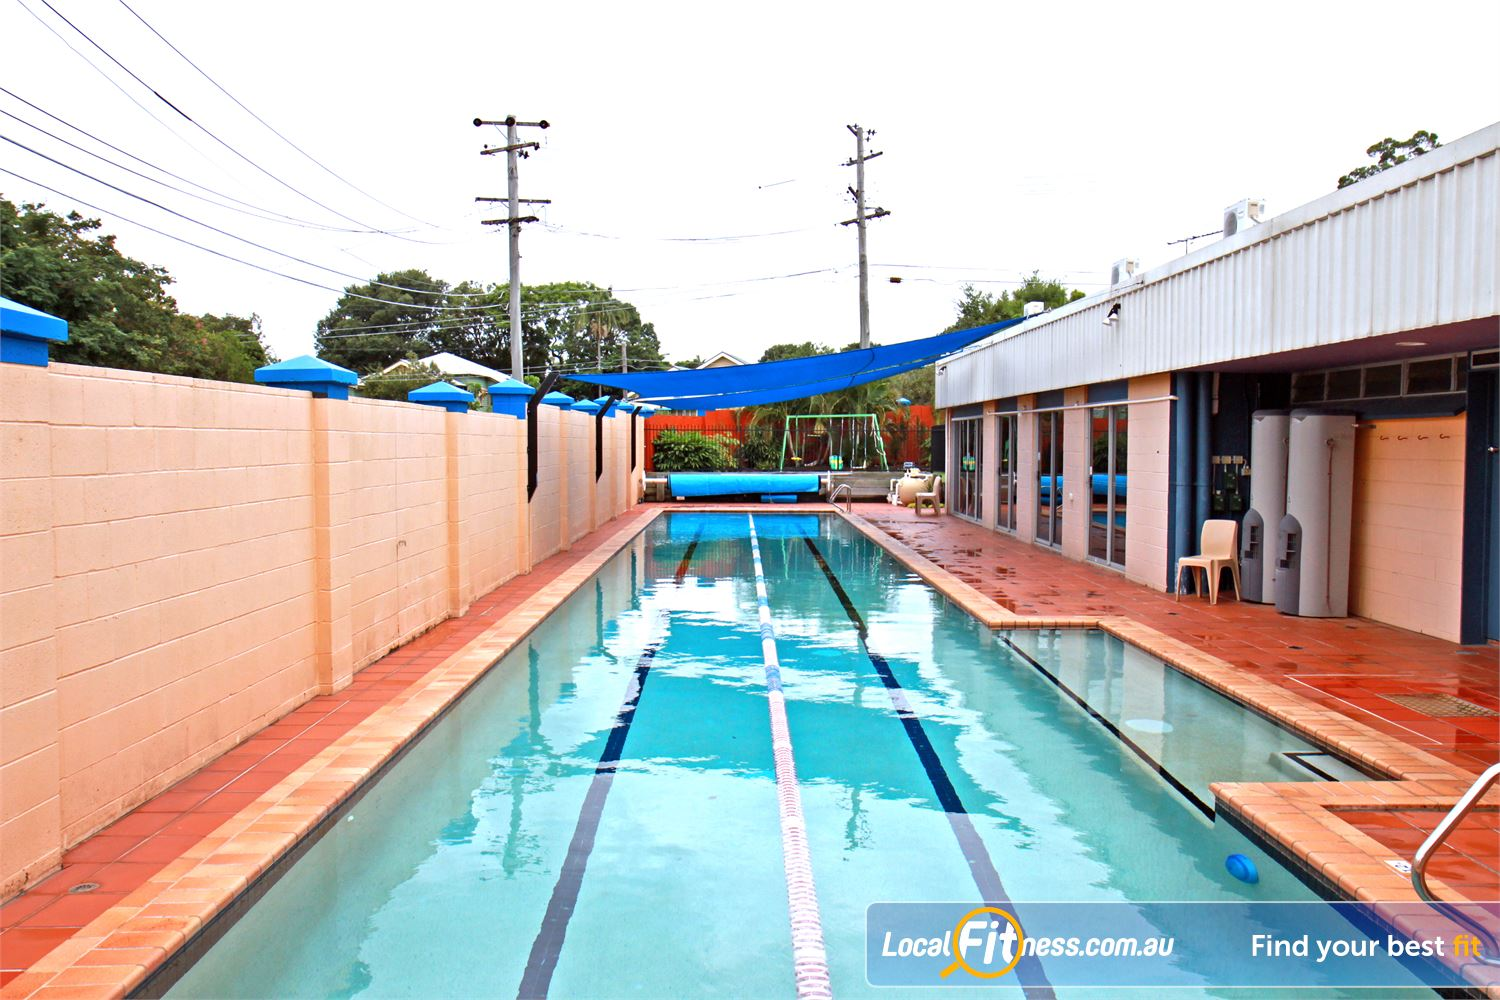 Goodlife Health Clubs Morningside 25m outdoor Morningside swimming pool.